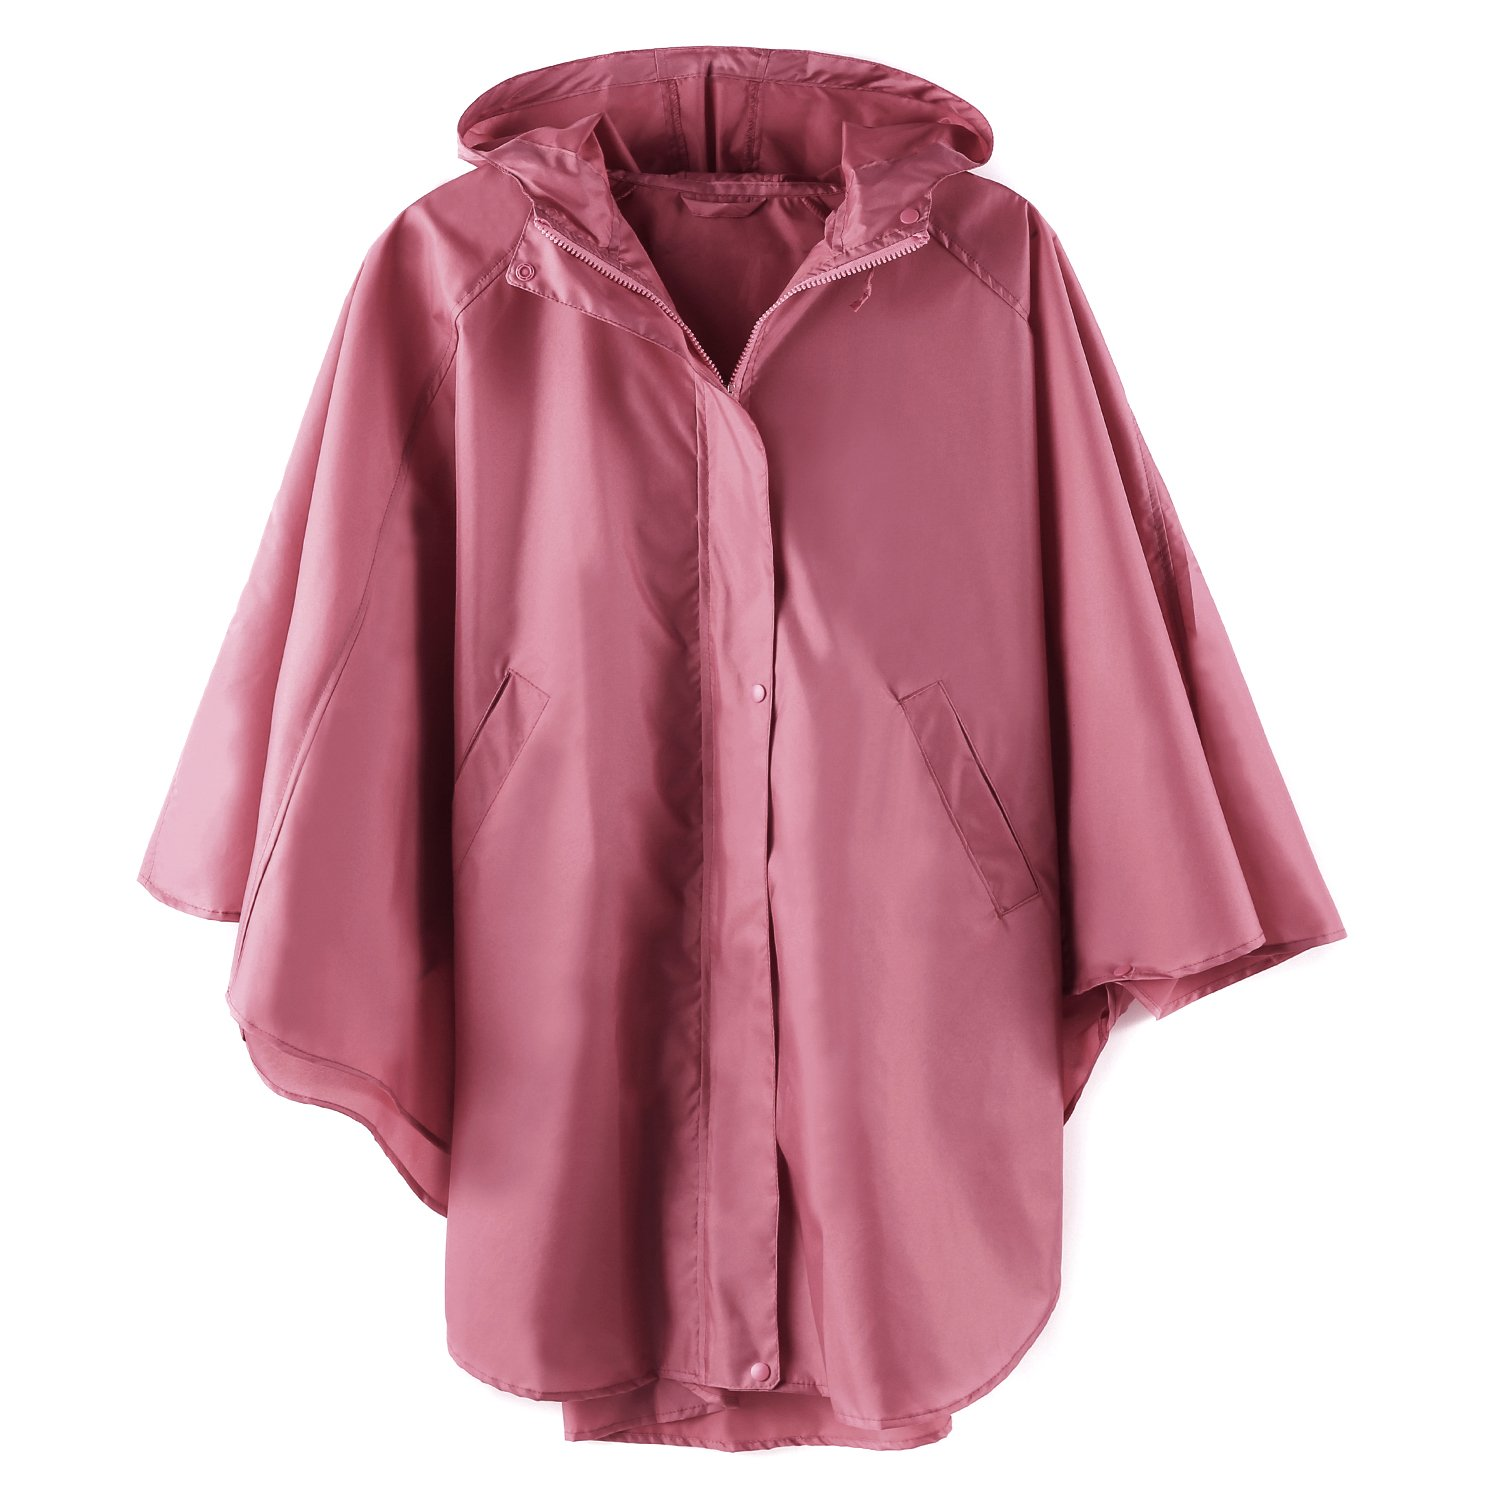 LINENLUX Waterproof Rain Poncho Hooded for Adults with Zipper Outdoor (Pink)